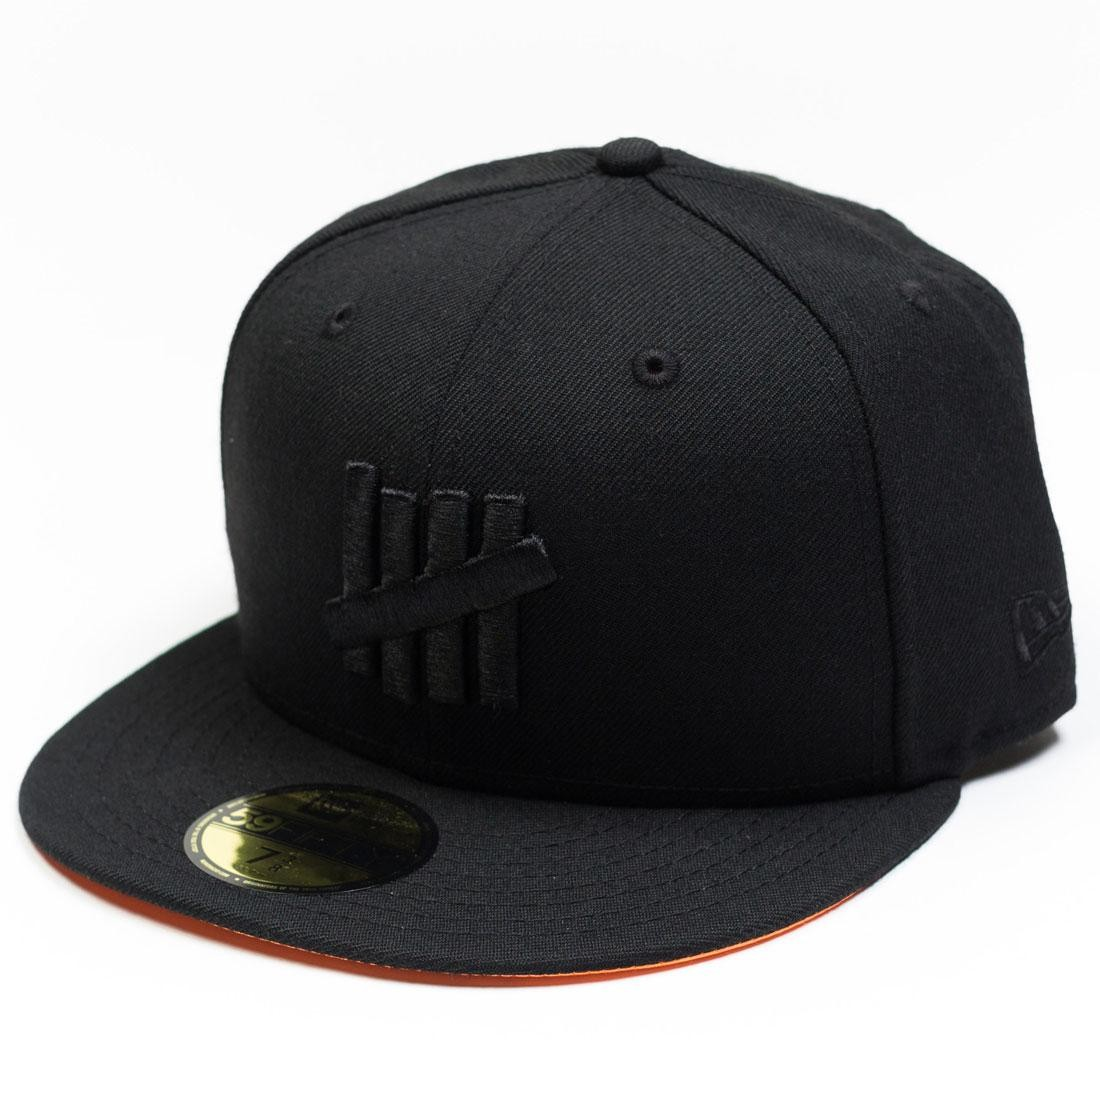 027e6e6d09d ... switzerland undefeated x new era eject fitted cap black 907fe 56a91